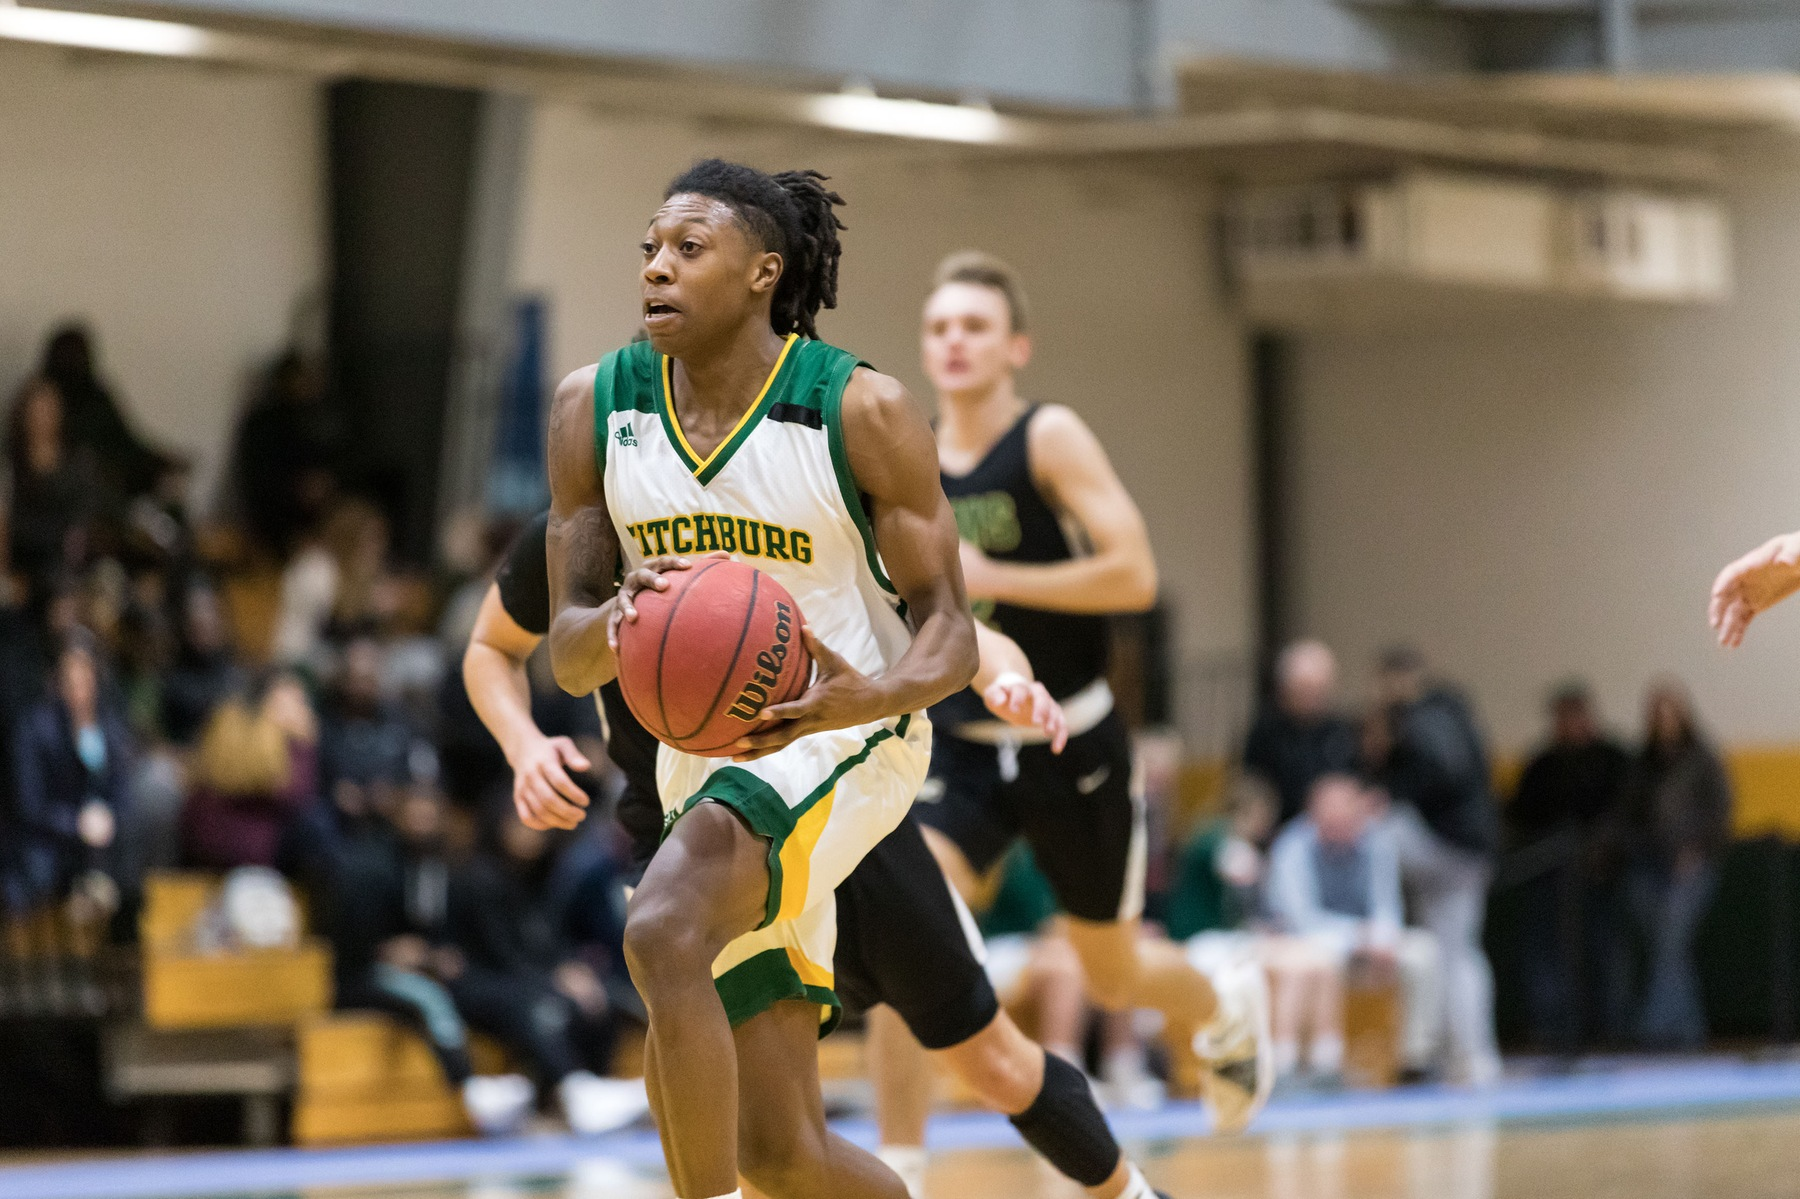 Falcons Fall to Vikings in MASCAC action 81-71